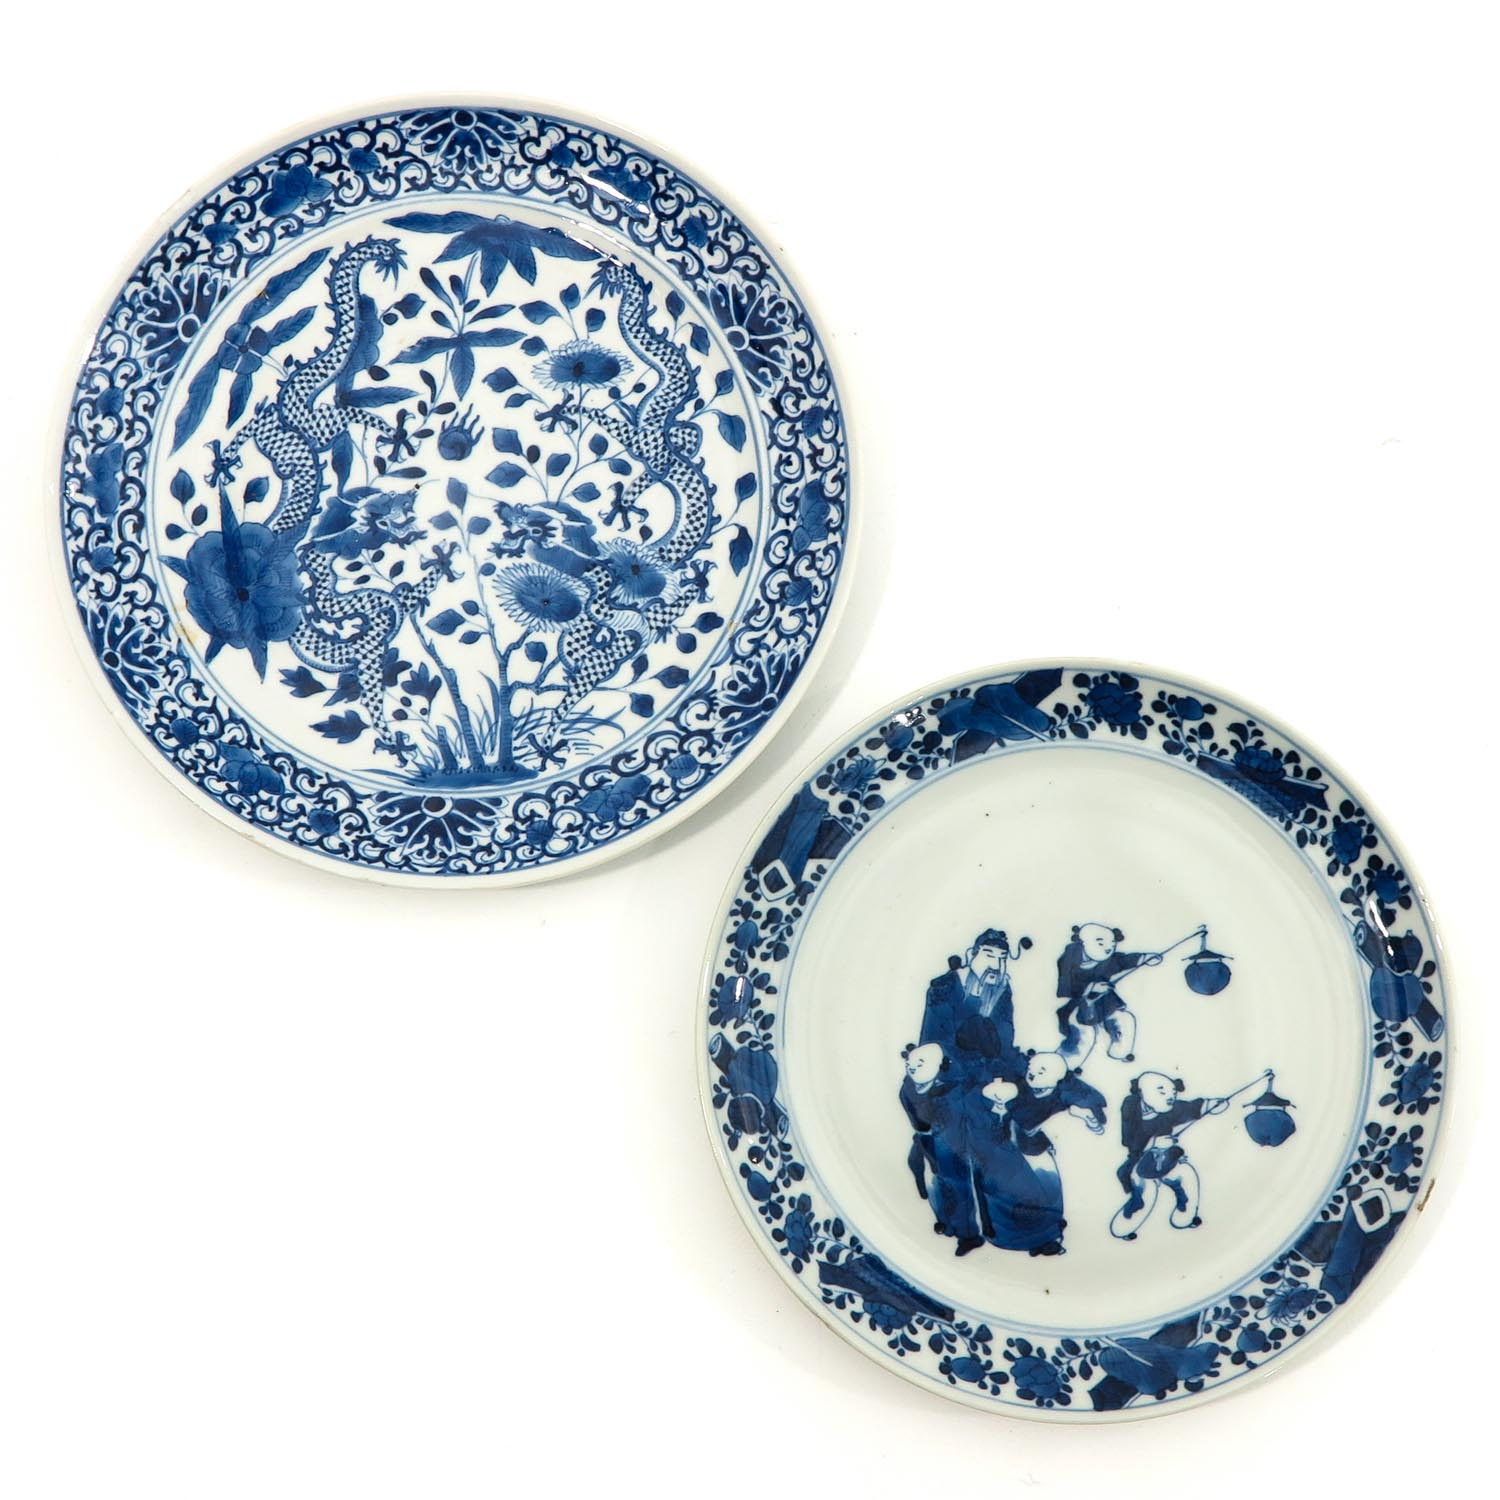 A Lot of 2 Blue and White Plates